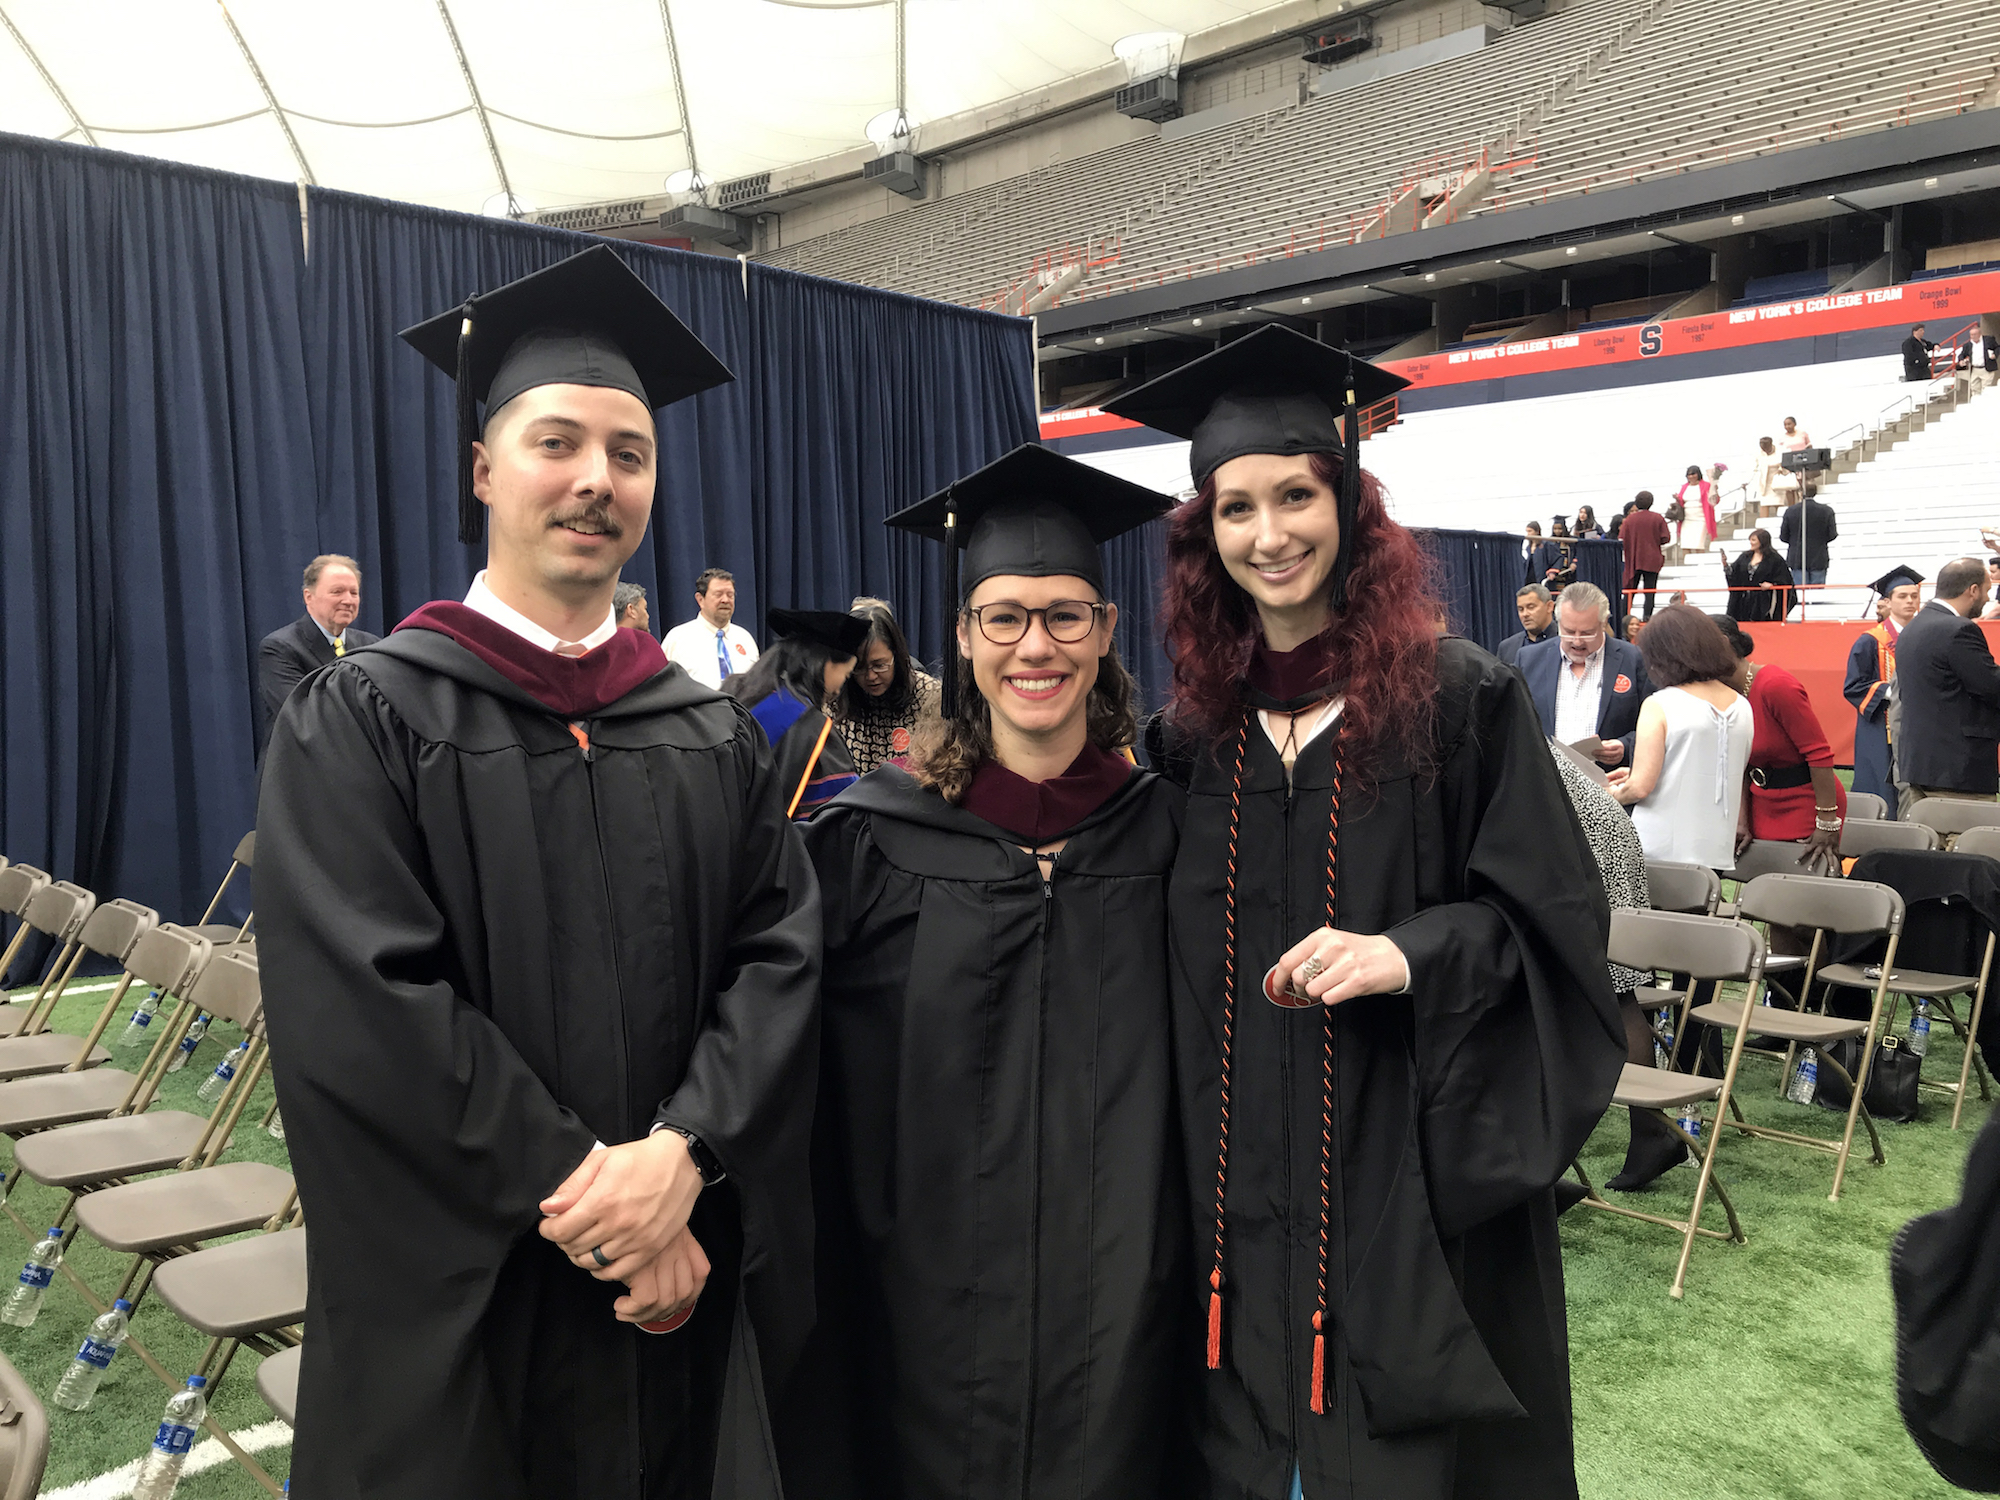 Syracuse University Newhouse Masters student Geena Matuson with recent graduates of the Military Visual Communications Program also receiving Masters, Levingston Lewis and Brianna Green, May 2019.